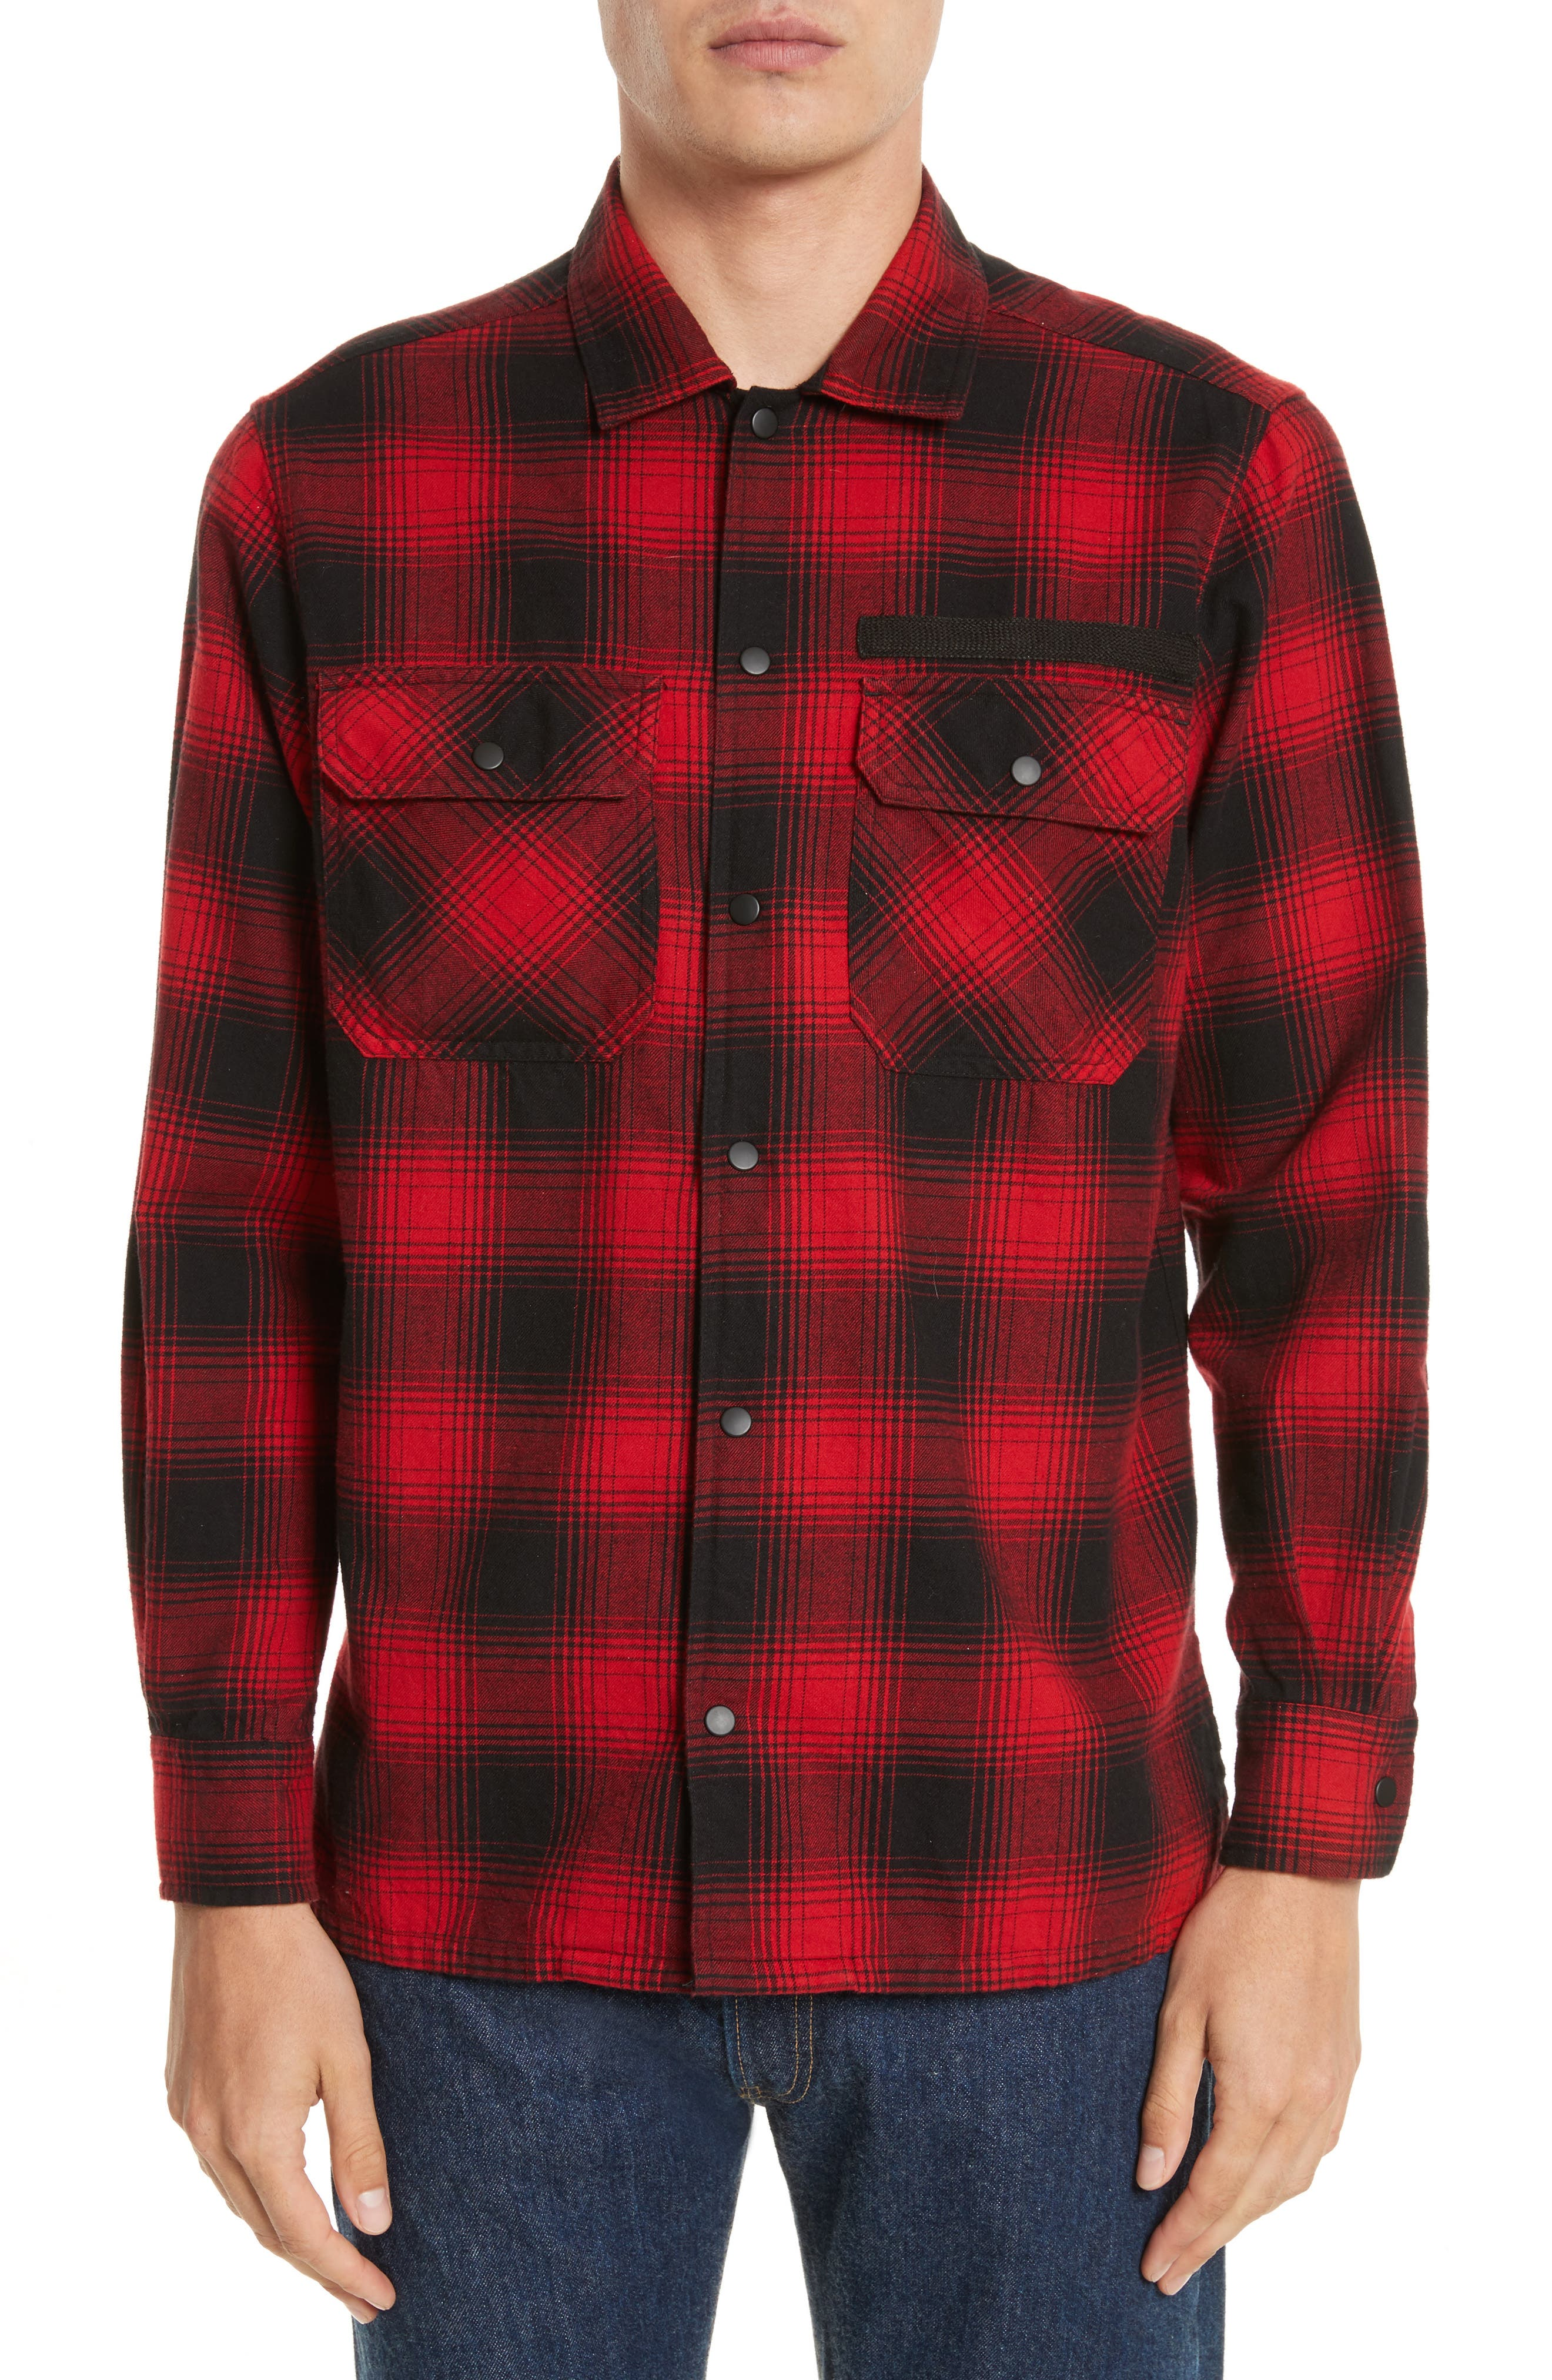 Main Image - OVADIA & SONS Plaid Flannel Shirt